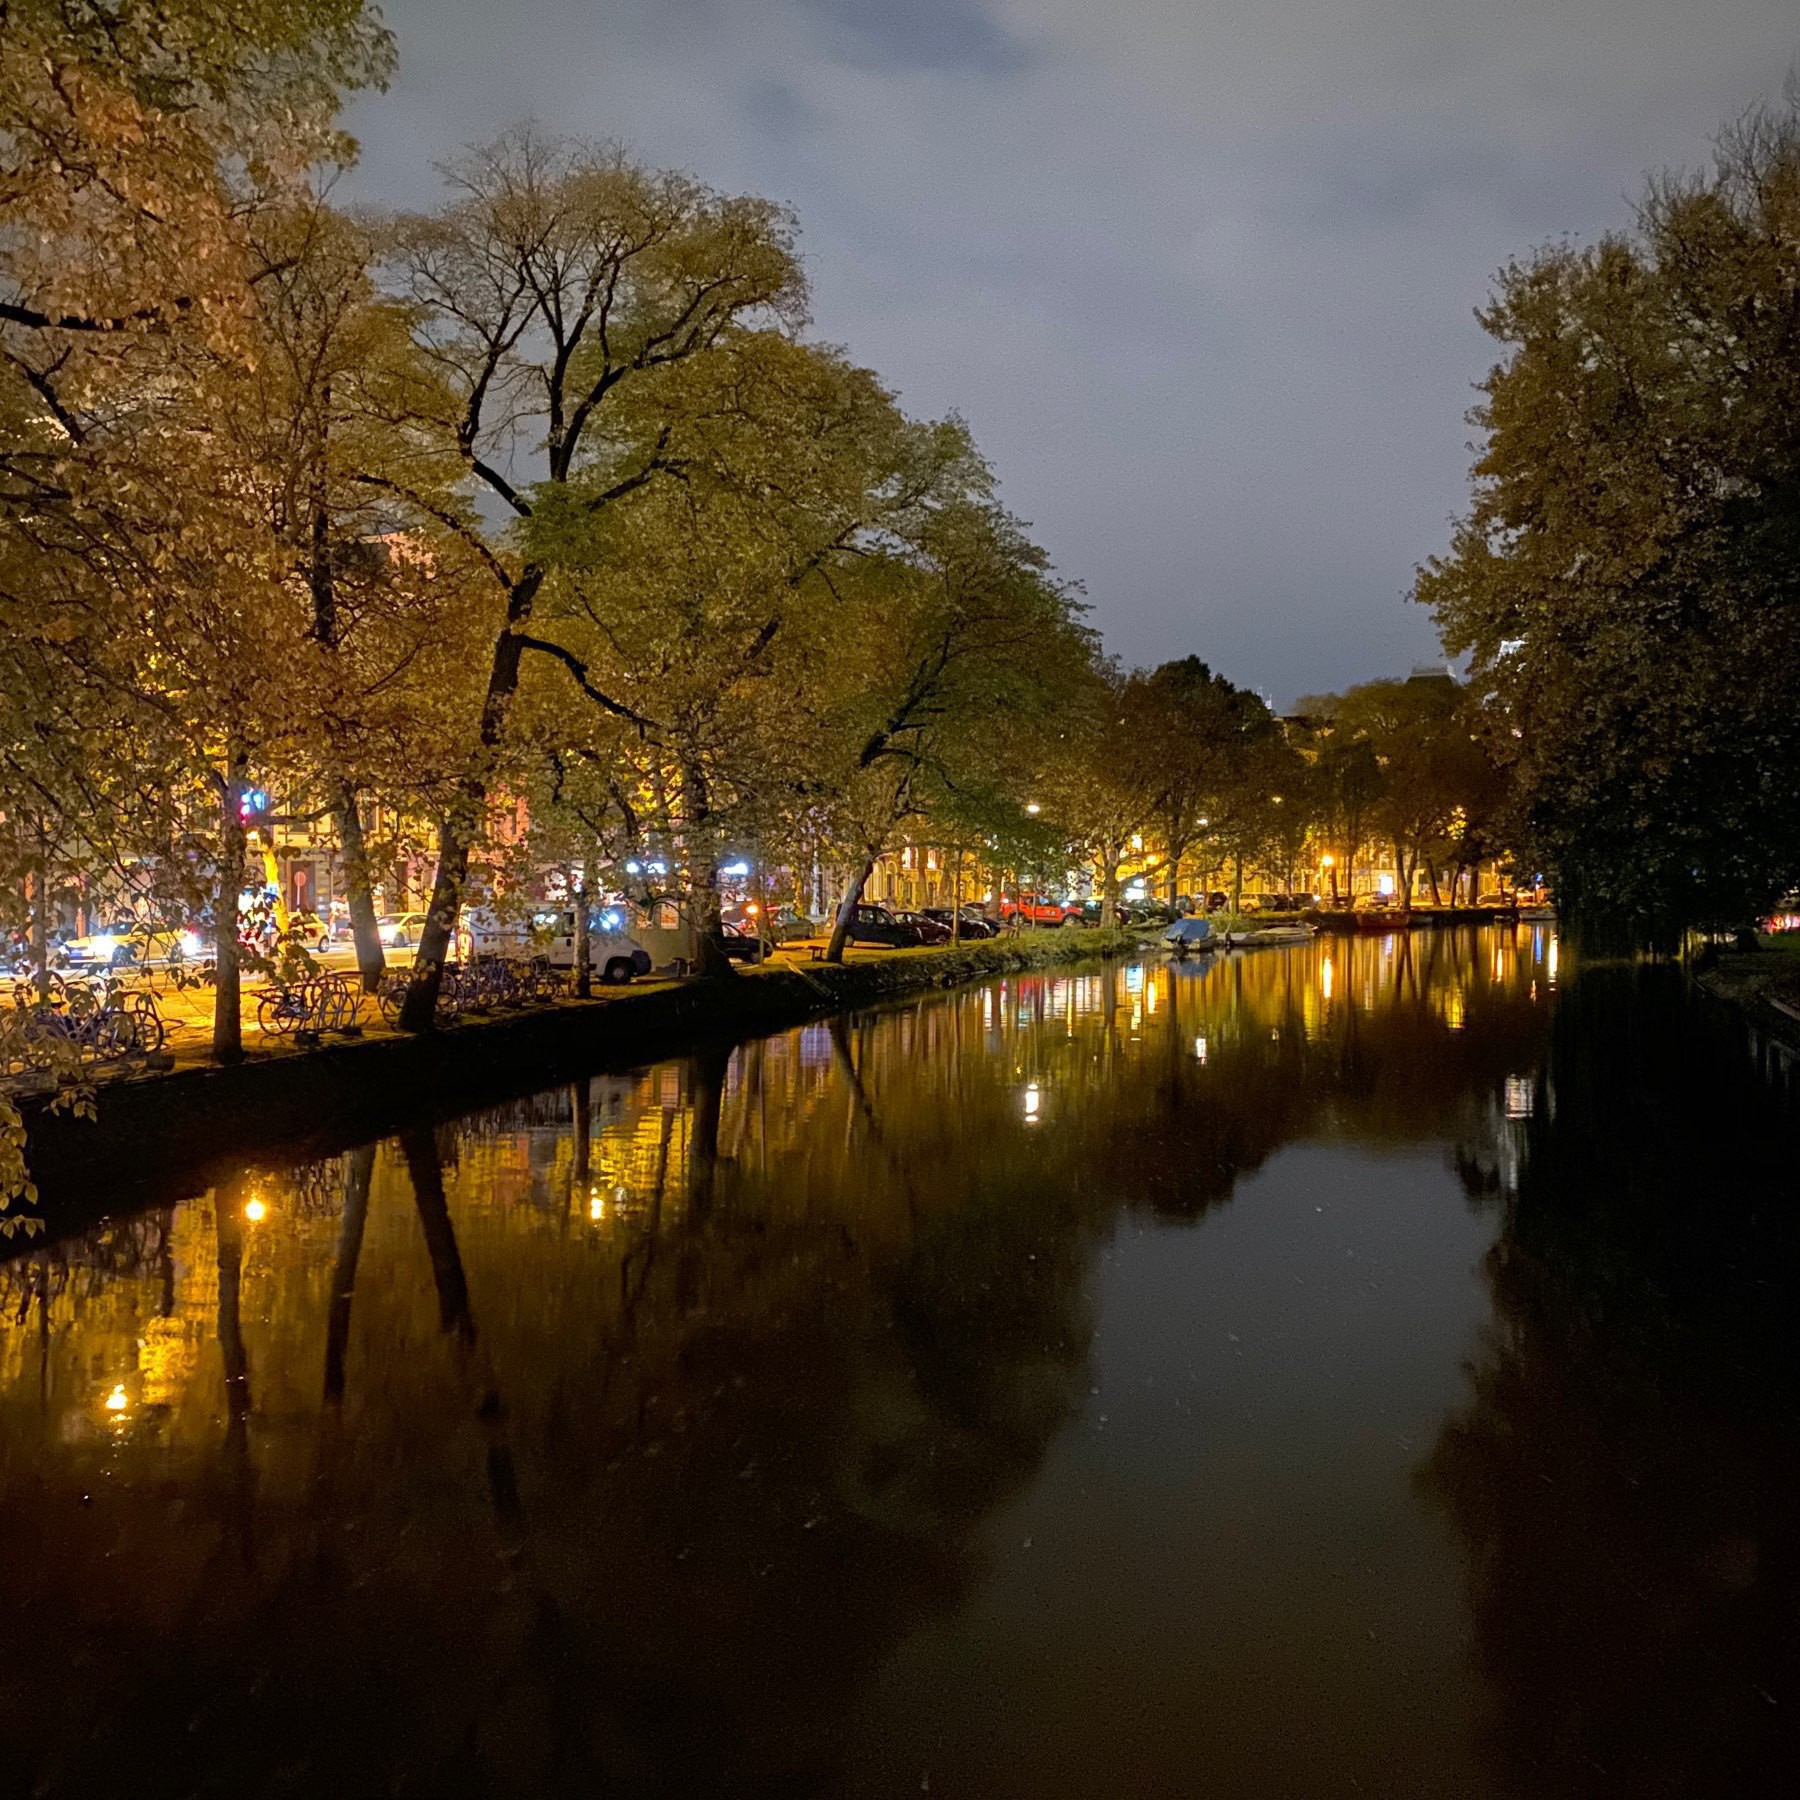 Night mode picture of an Amsterdam canal with tree canopy.